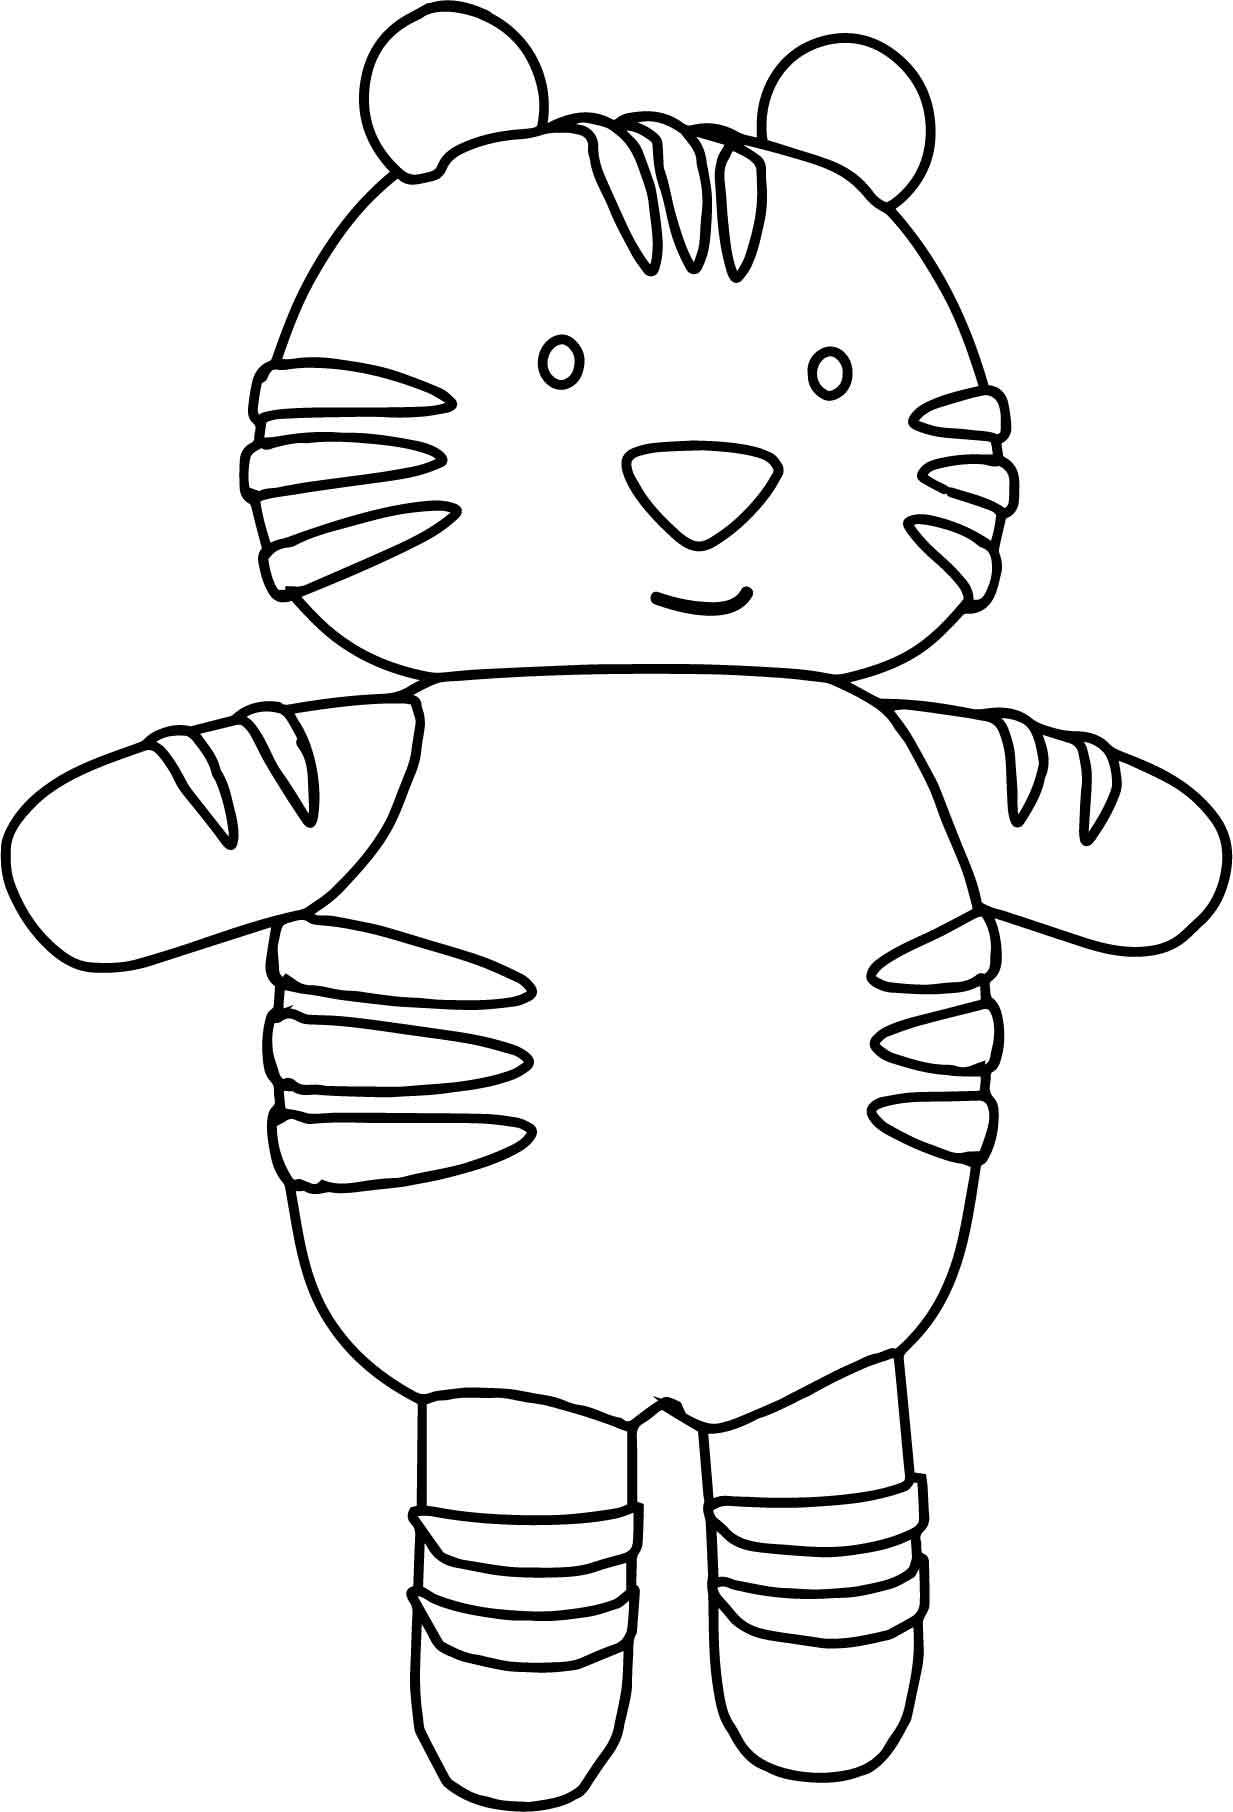 Toy Cuttle Pretty Amazing Cat Coloring Page